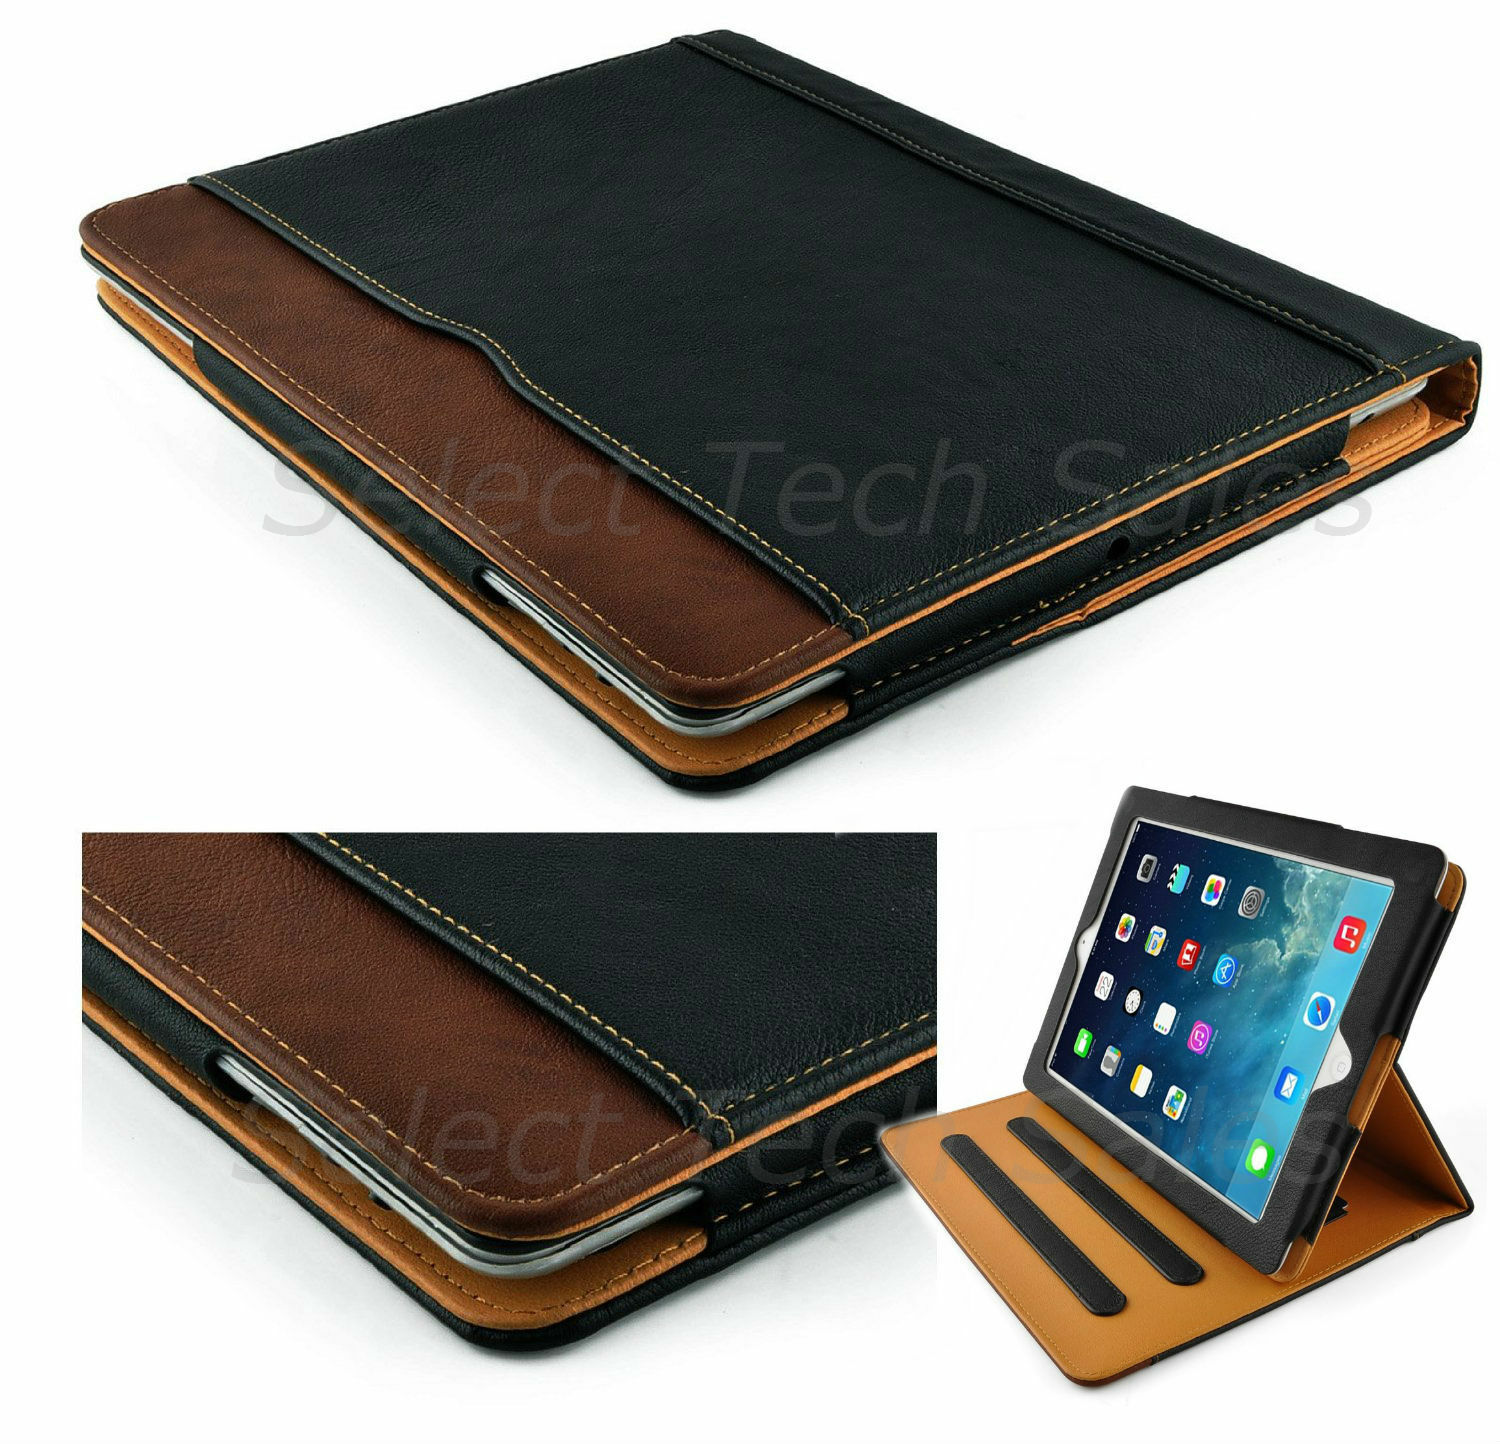 iPad 9.7 6th 2018 Soft Leather Smart iPad Case Cover Sleep Wake Stand for APPLE